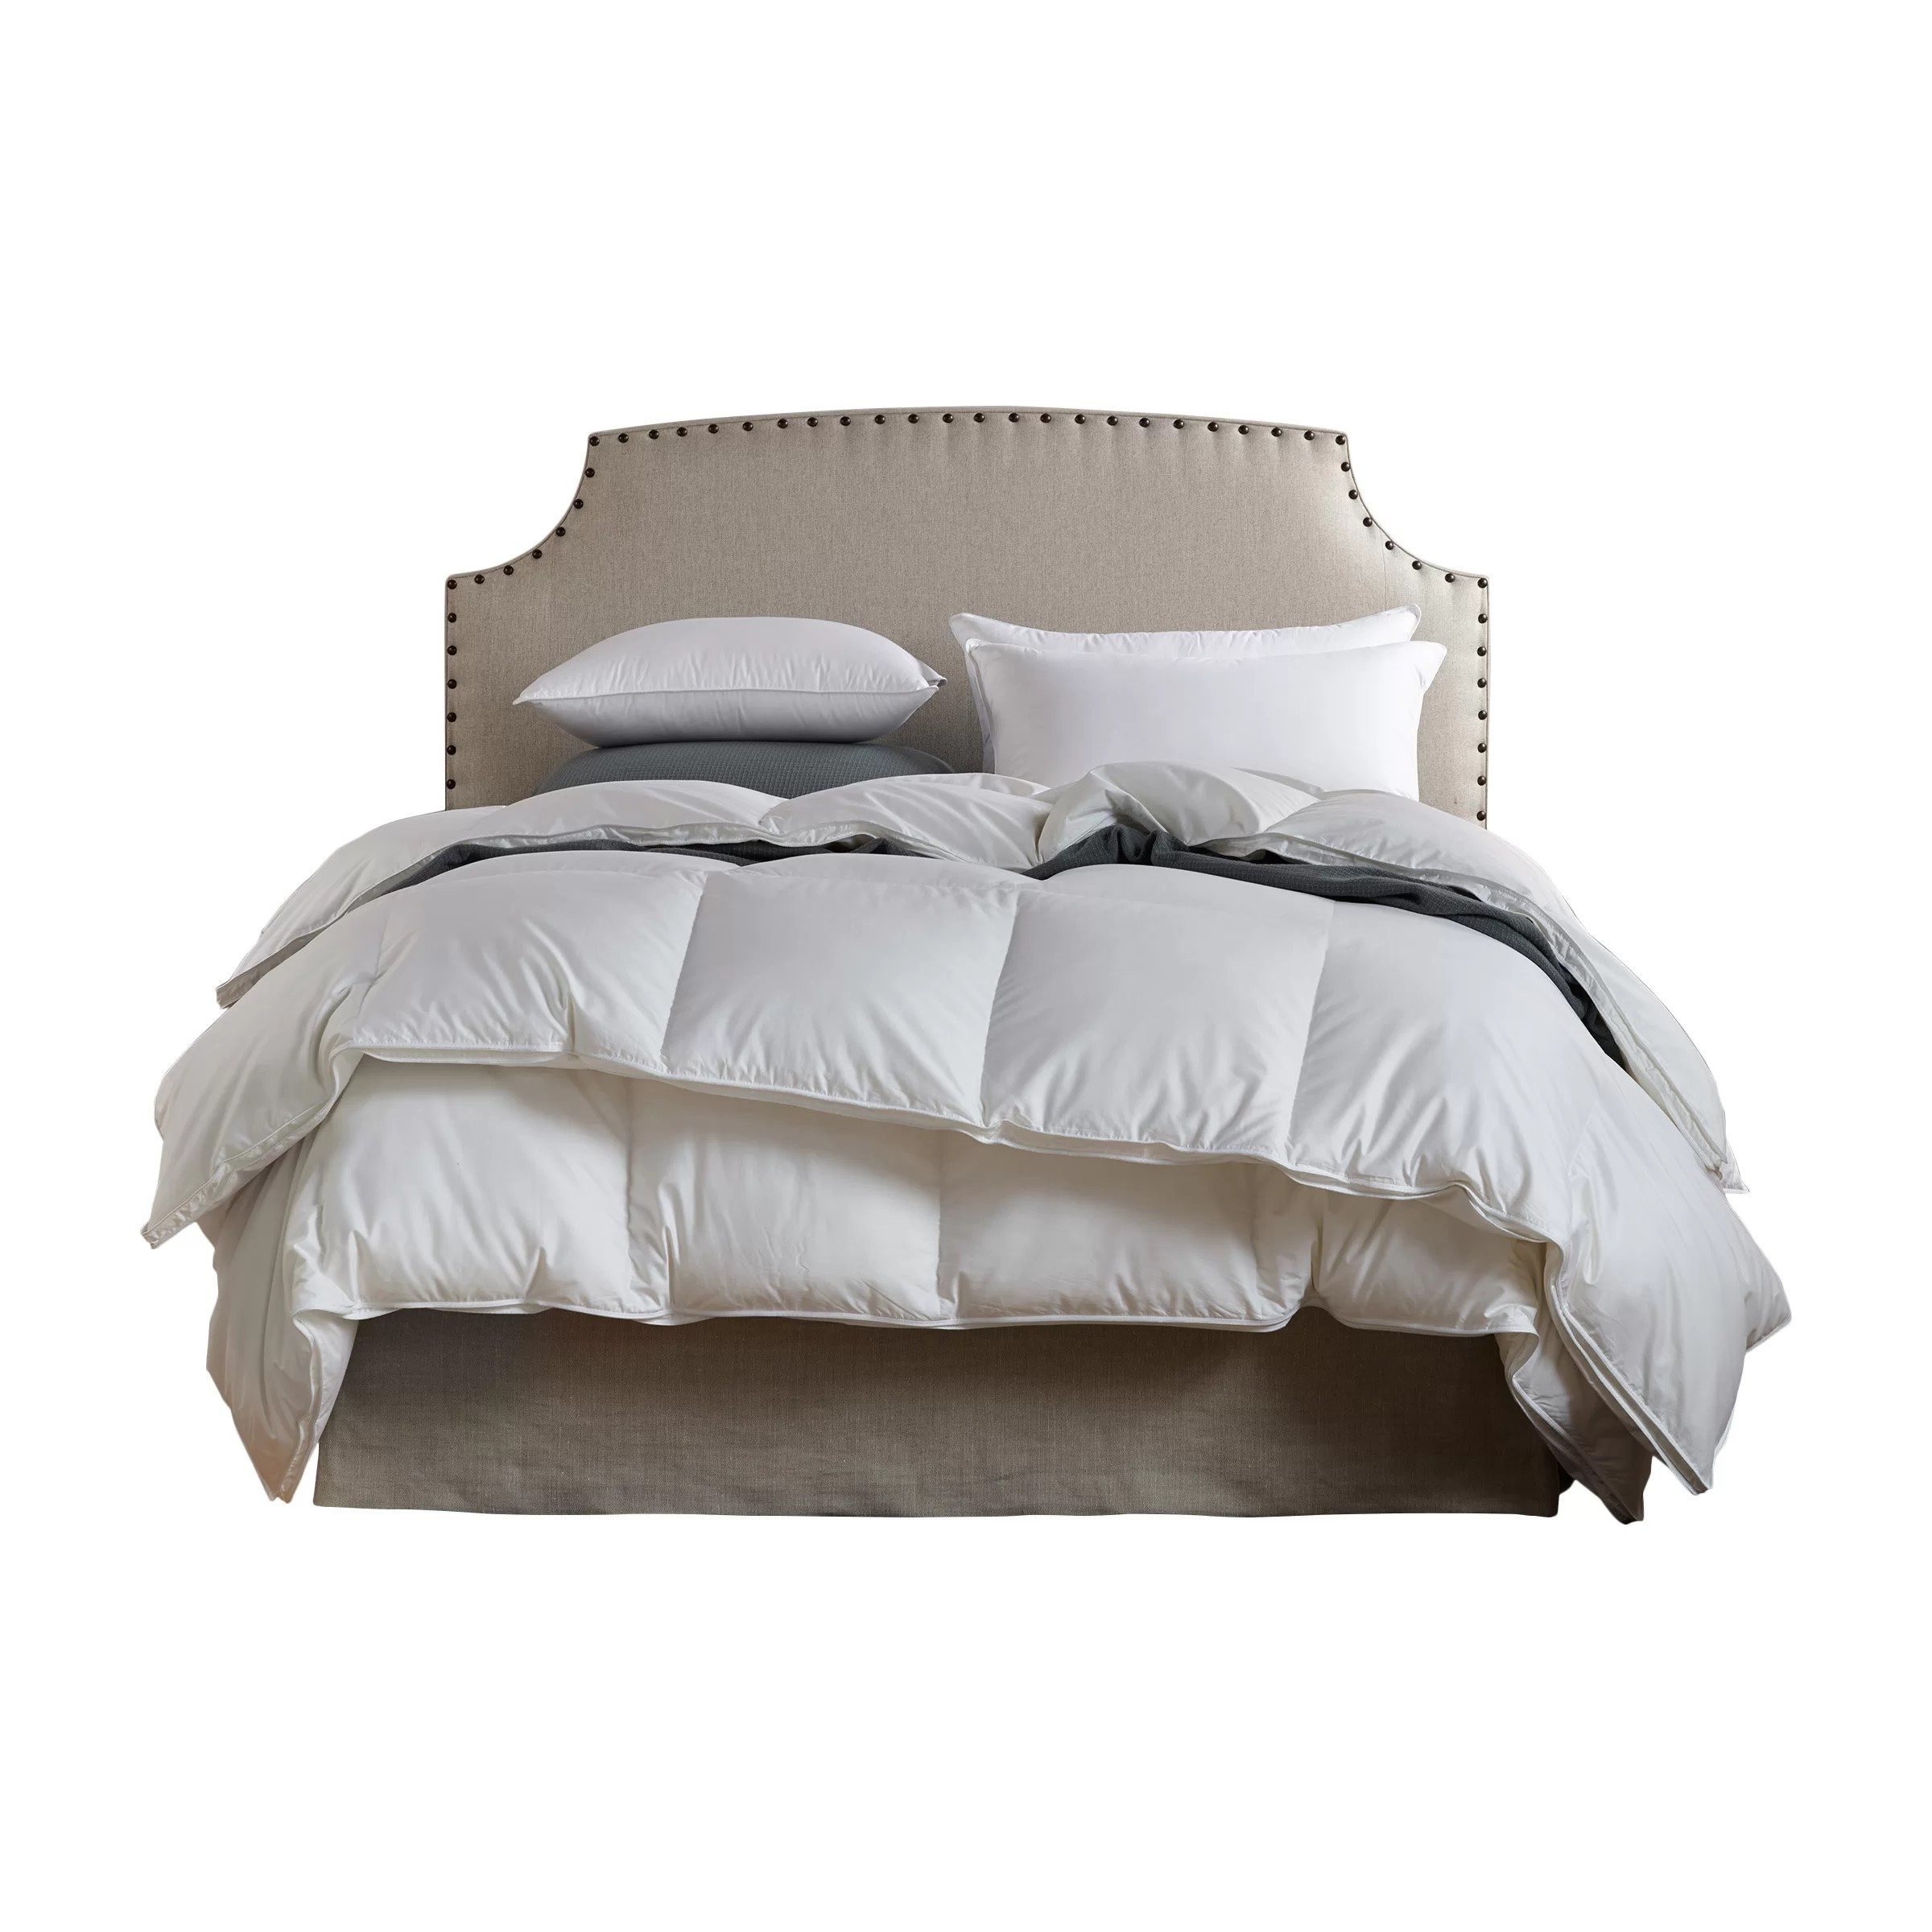 sizes pretty insert king reviravoltta awful cheap ideas inserts duvet down com of